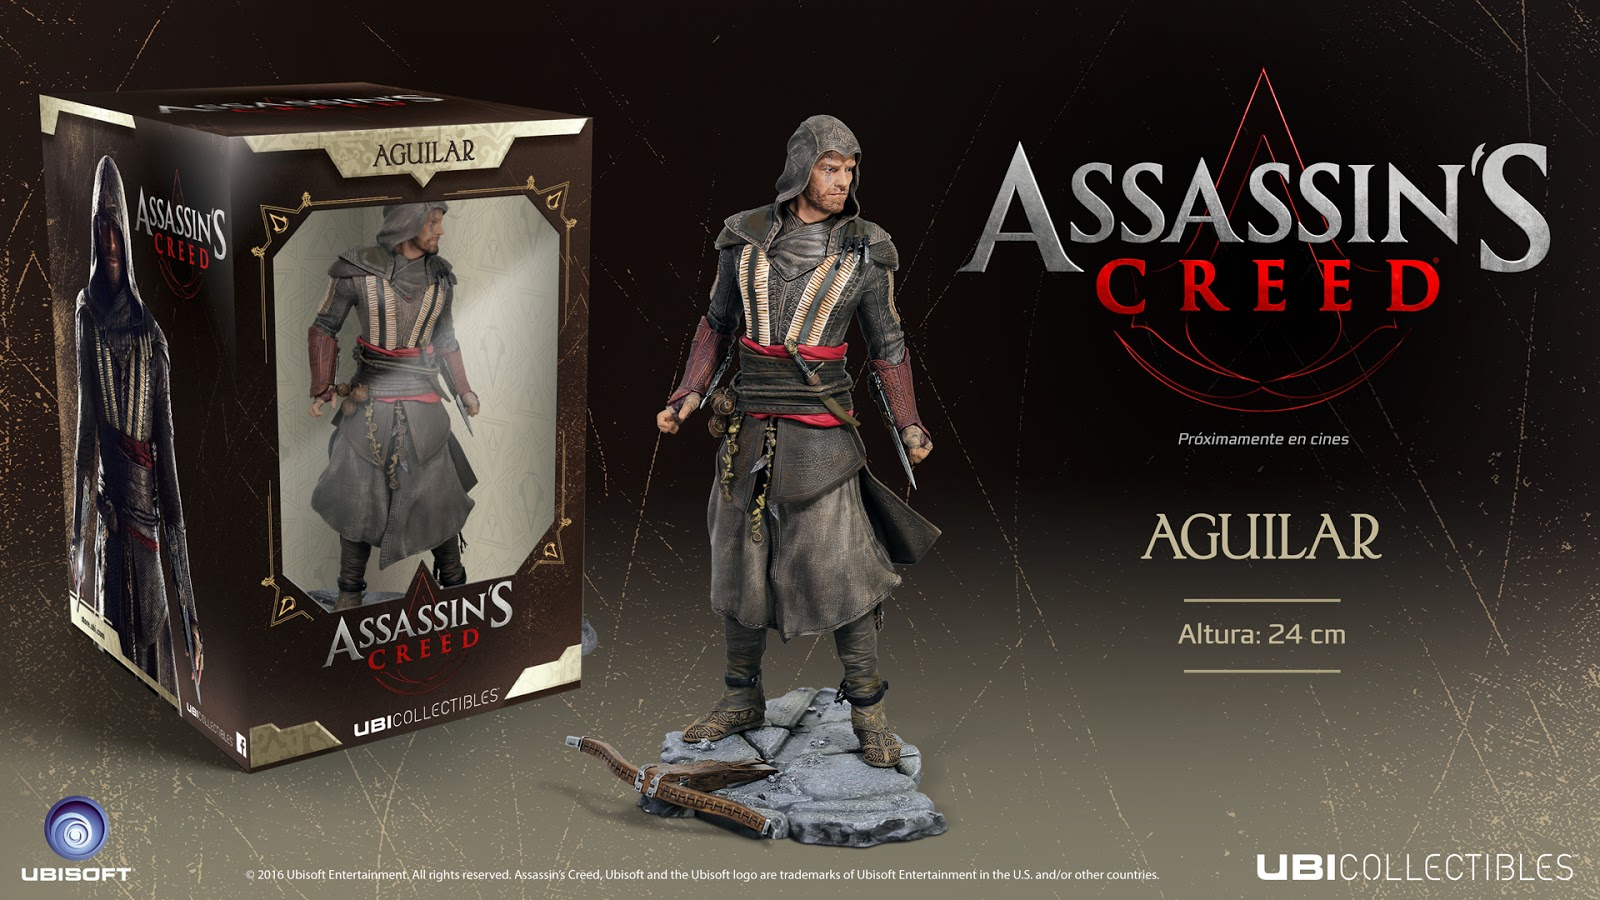 Tráiler oficial de Assassin's Creed y Ubicollectibles